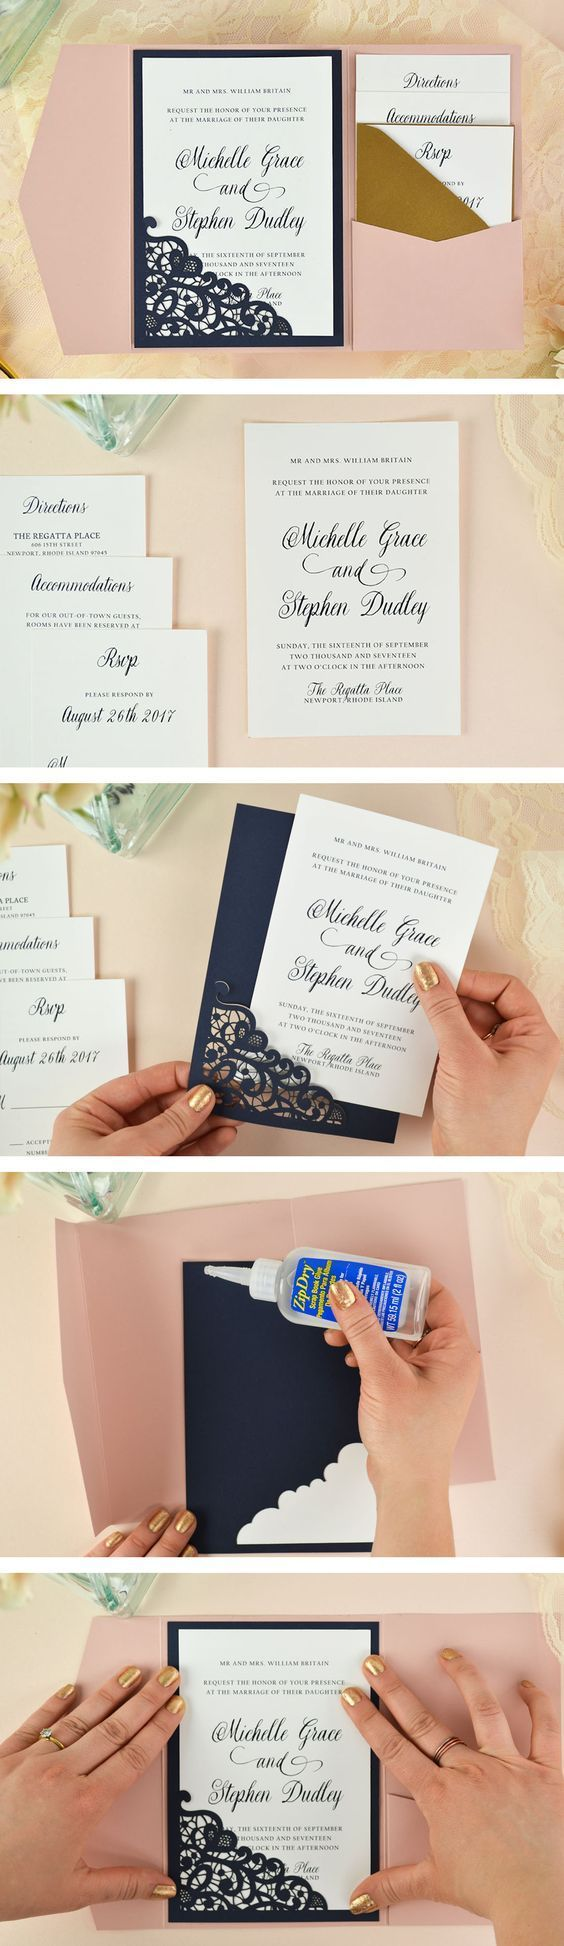 Verona wedding invitation boxed white lace amp pearl brooch w - How To Diy Laser Wedding Invitations With Slide In Cards